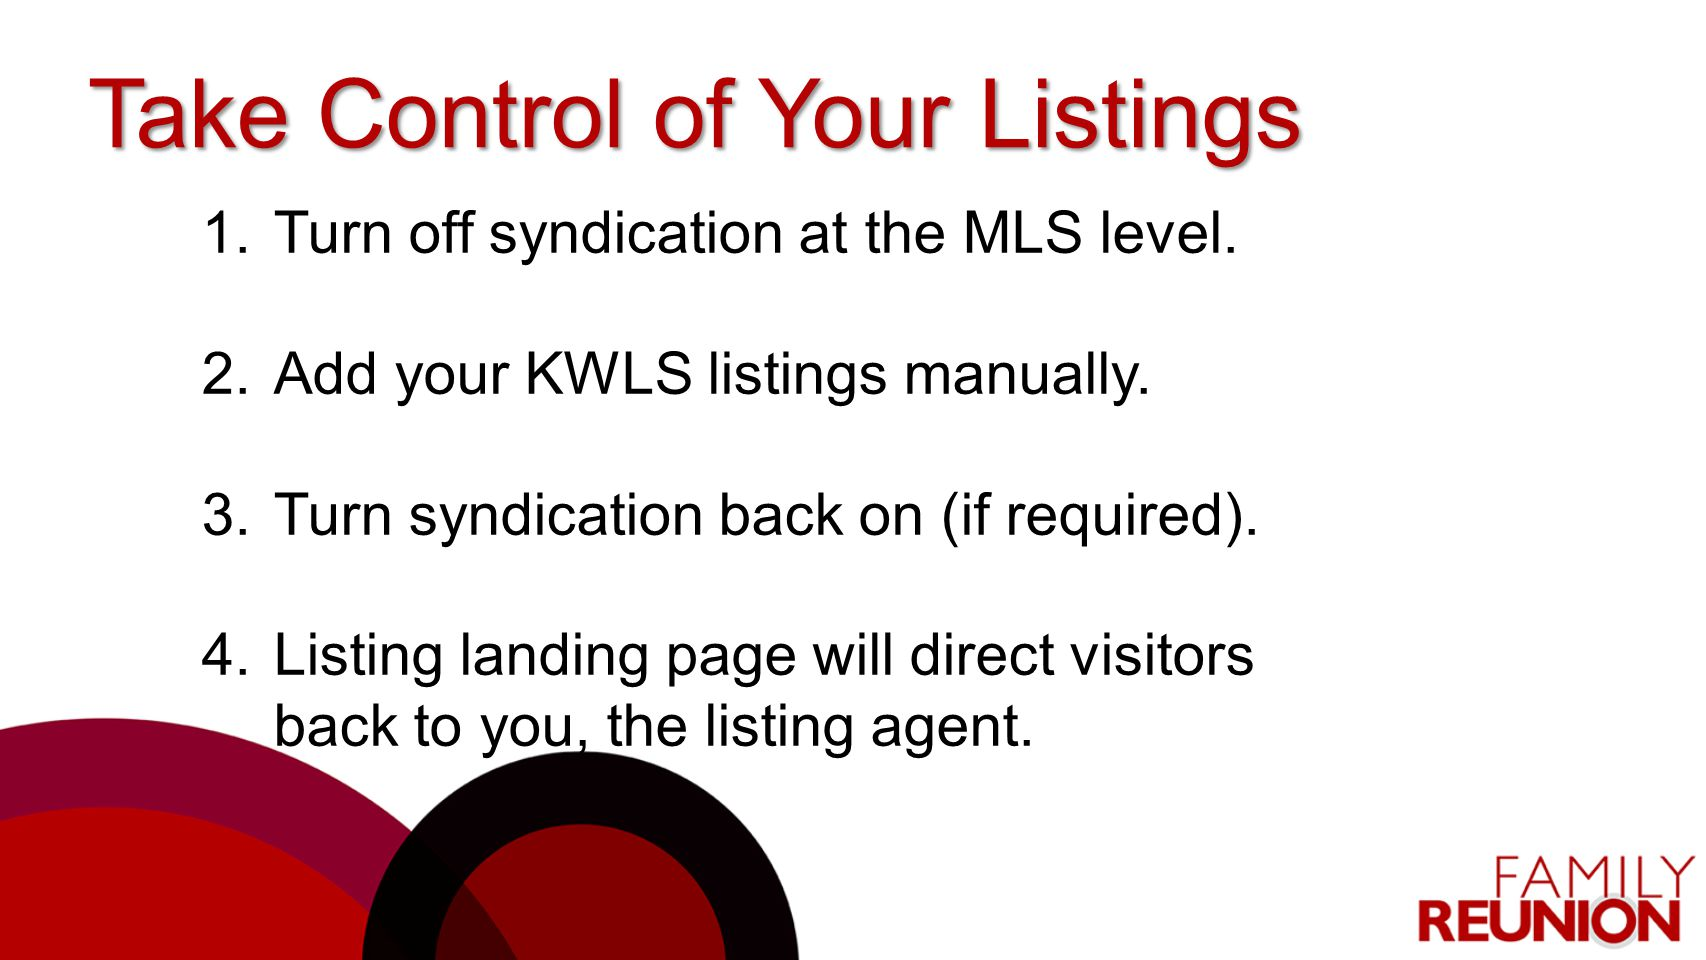 Take Control of Your Listings